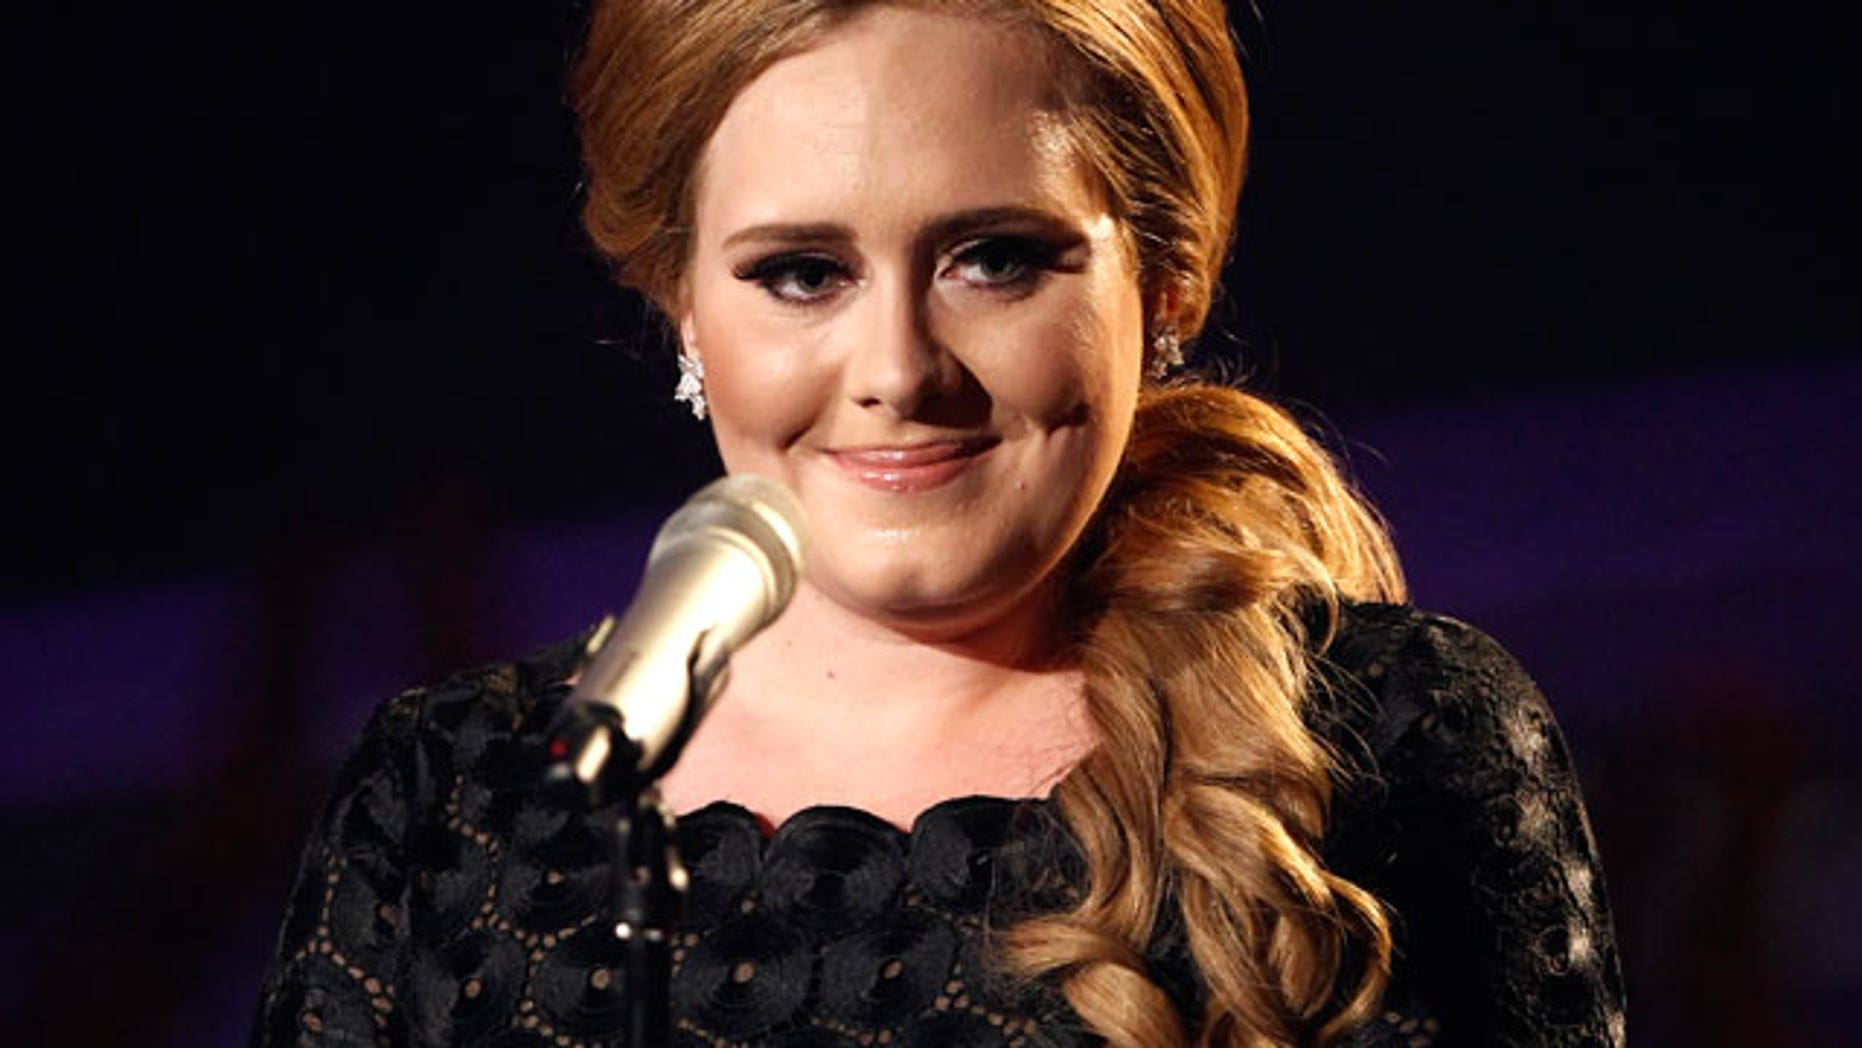 In this Aug. 28, 2011 file photo, singer Adele is shown at the MTV Video Music Awards in Los Angeles.